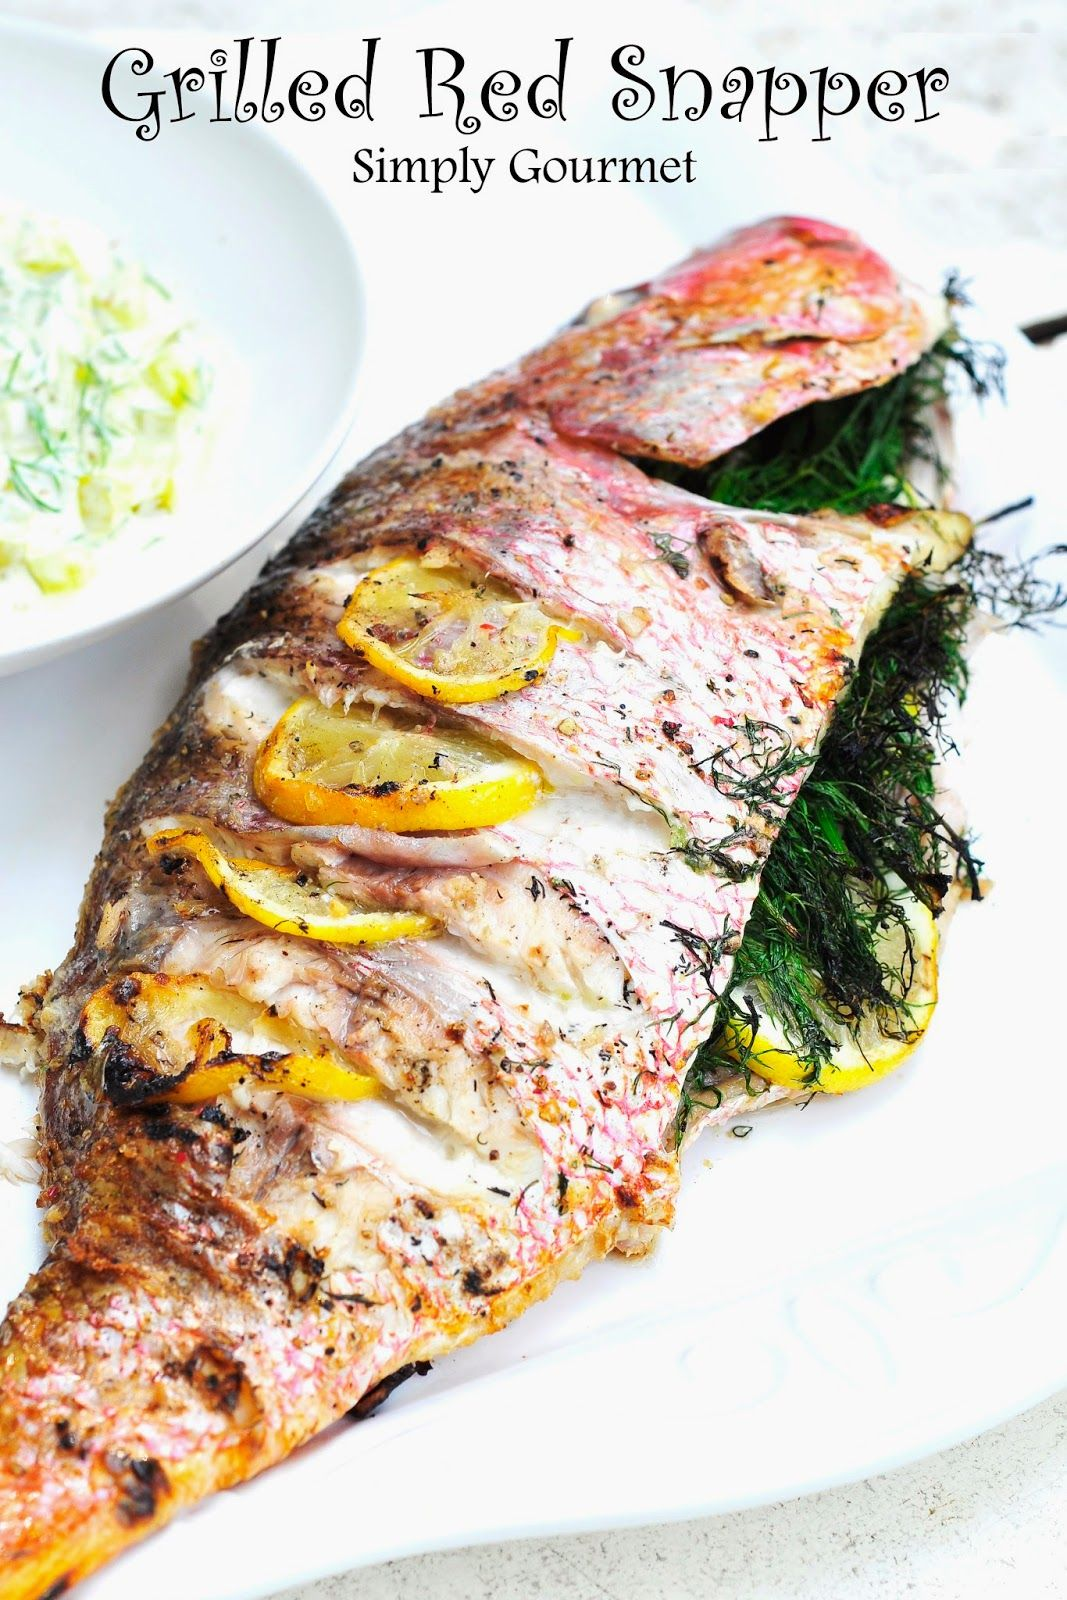 Simply gourmet grilled red snapper simply gourmet for Gourmet fish recipes